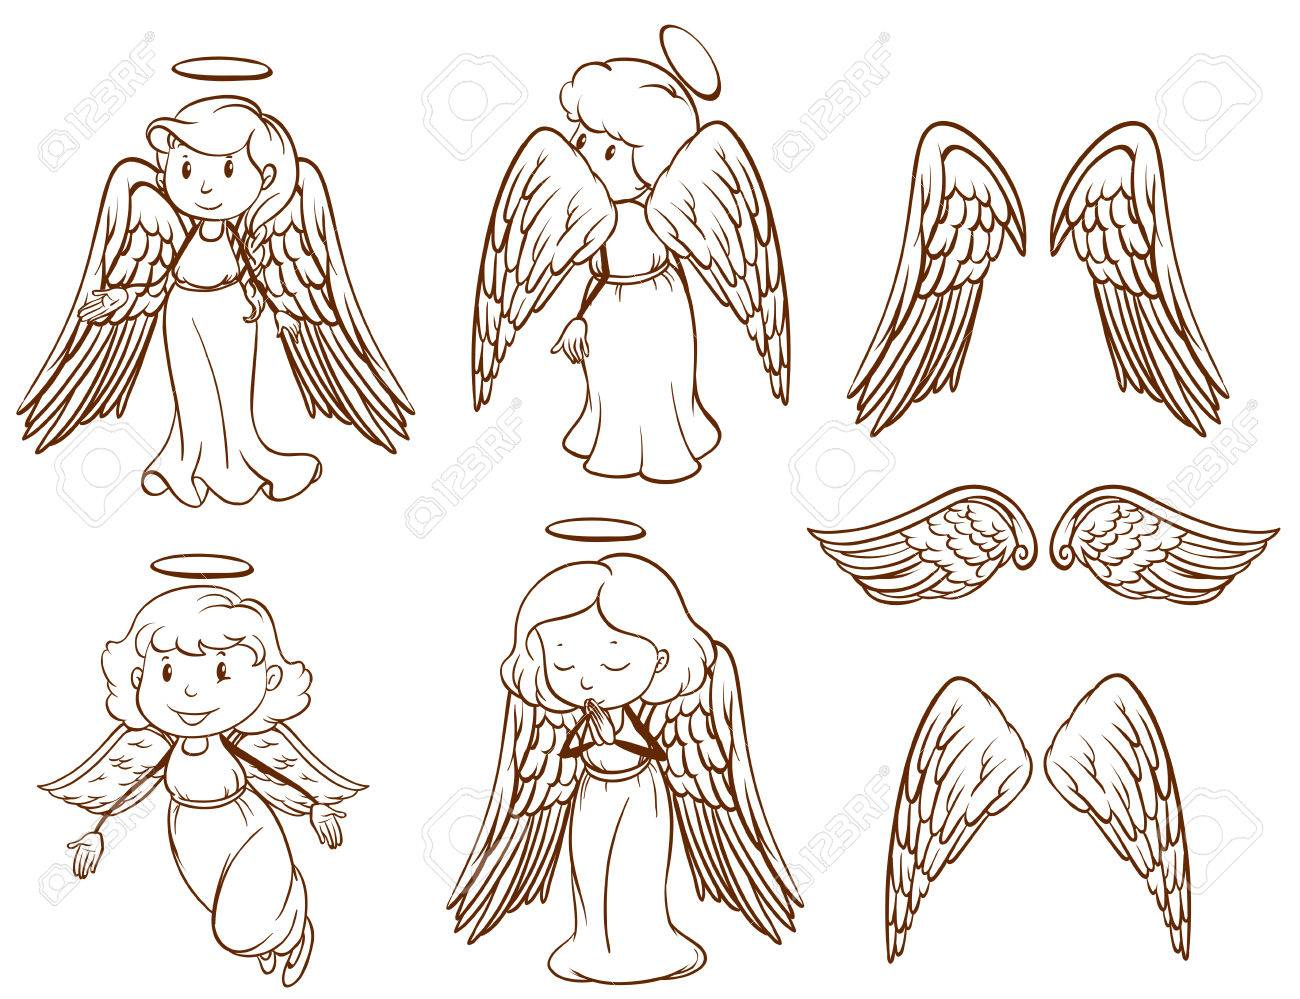 1300x999 Illustration Of The Simple Sketches Of Angels And Their Wings